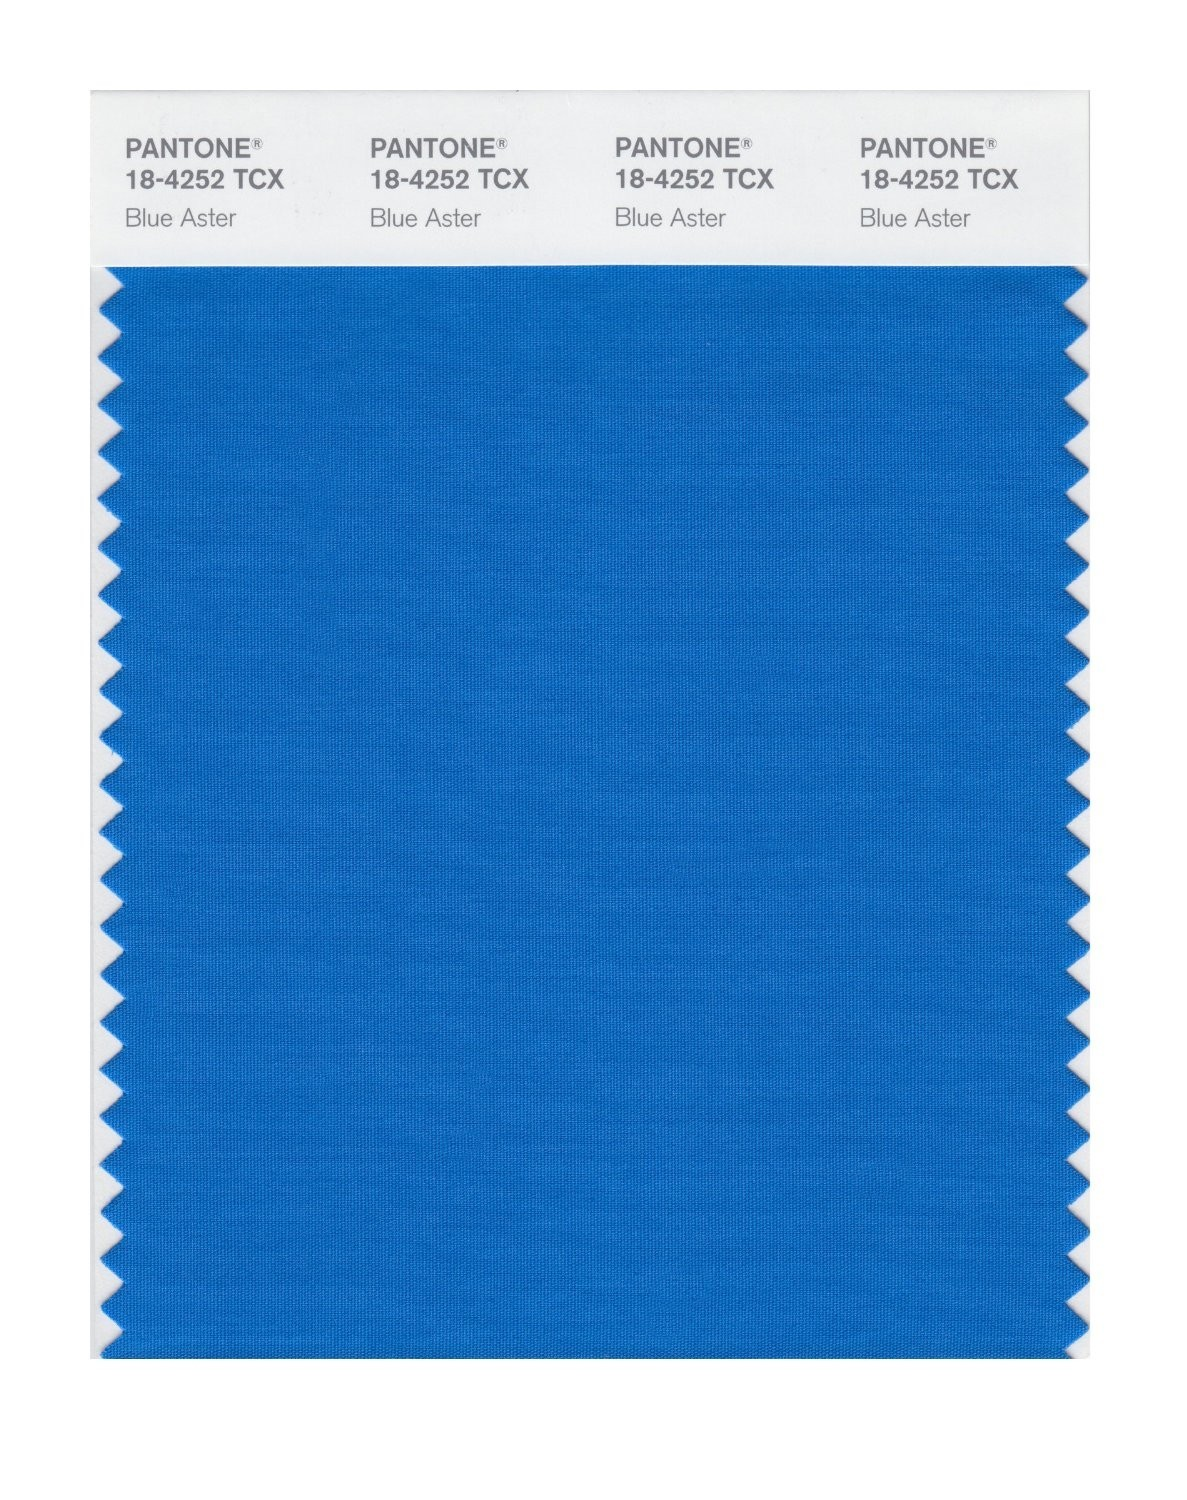 Pantone 18-4252 TCX Swatch Card Blue Aster